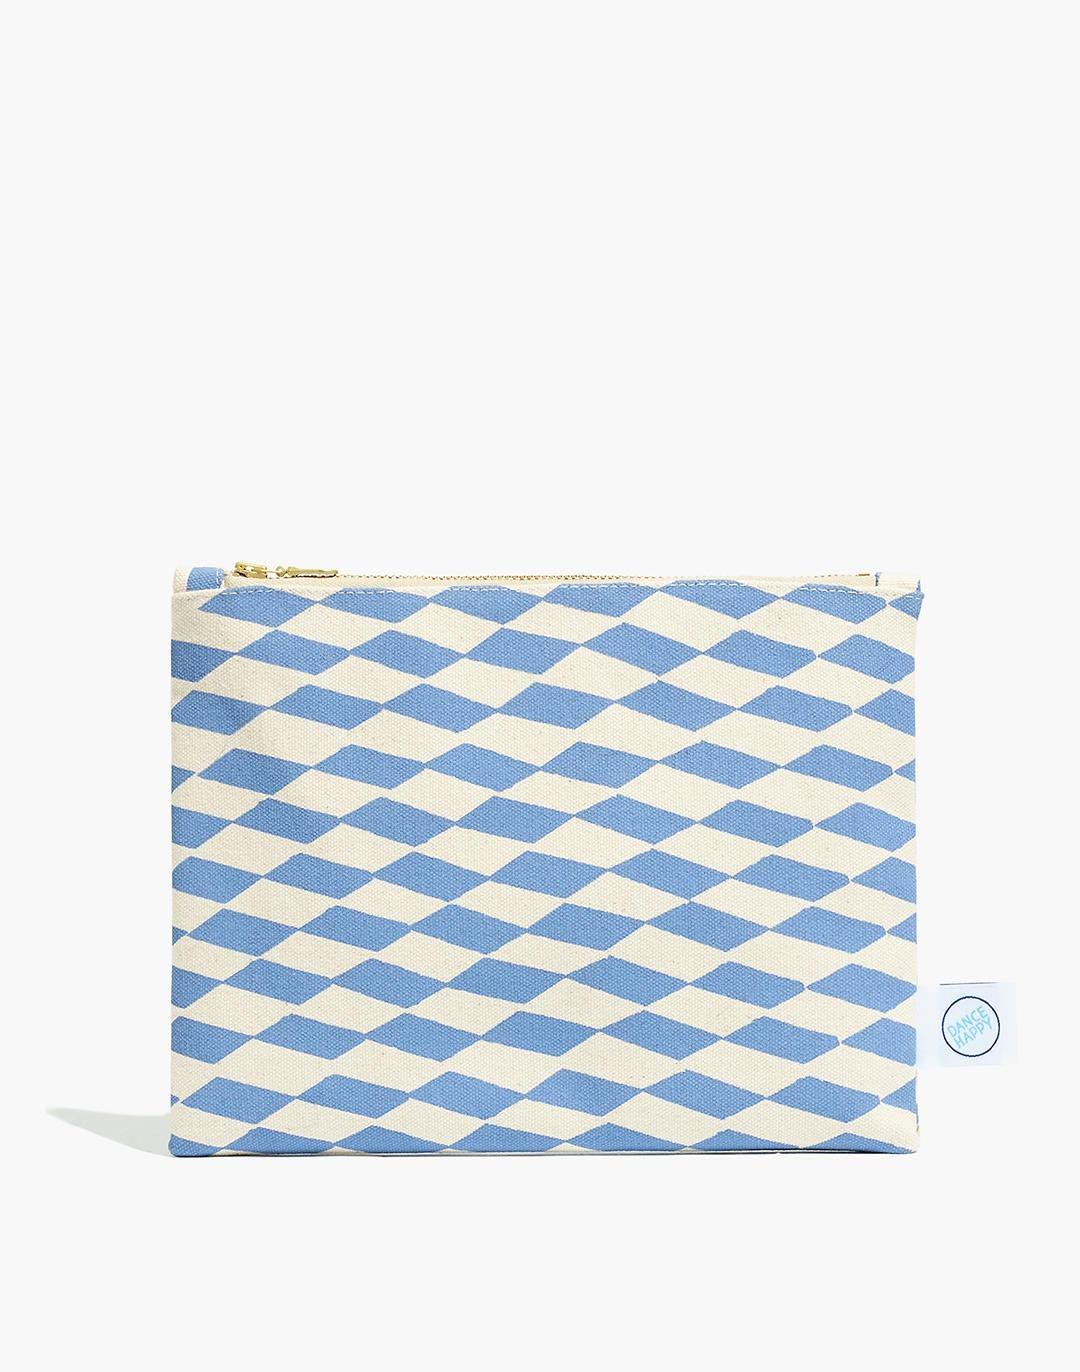 Madewell x Dance Happy Flat Pouch